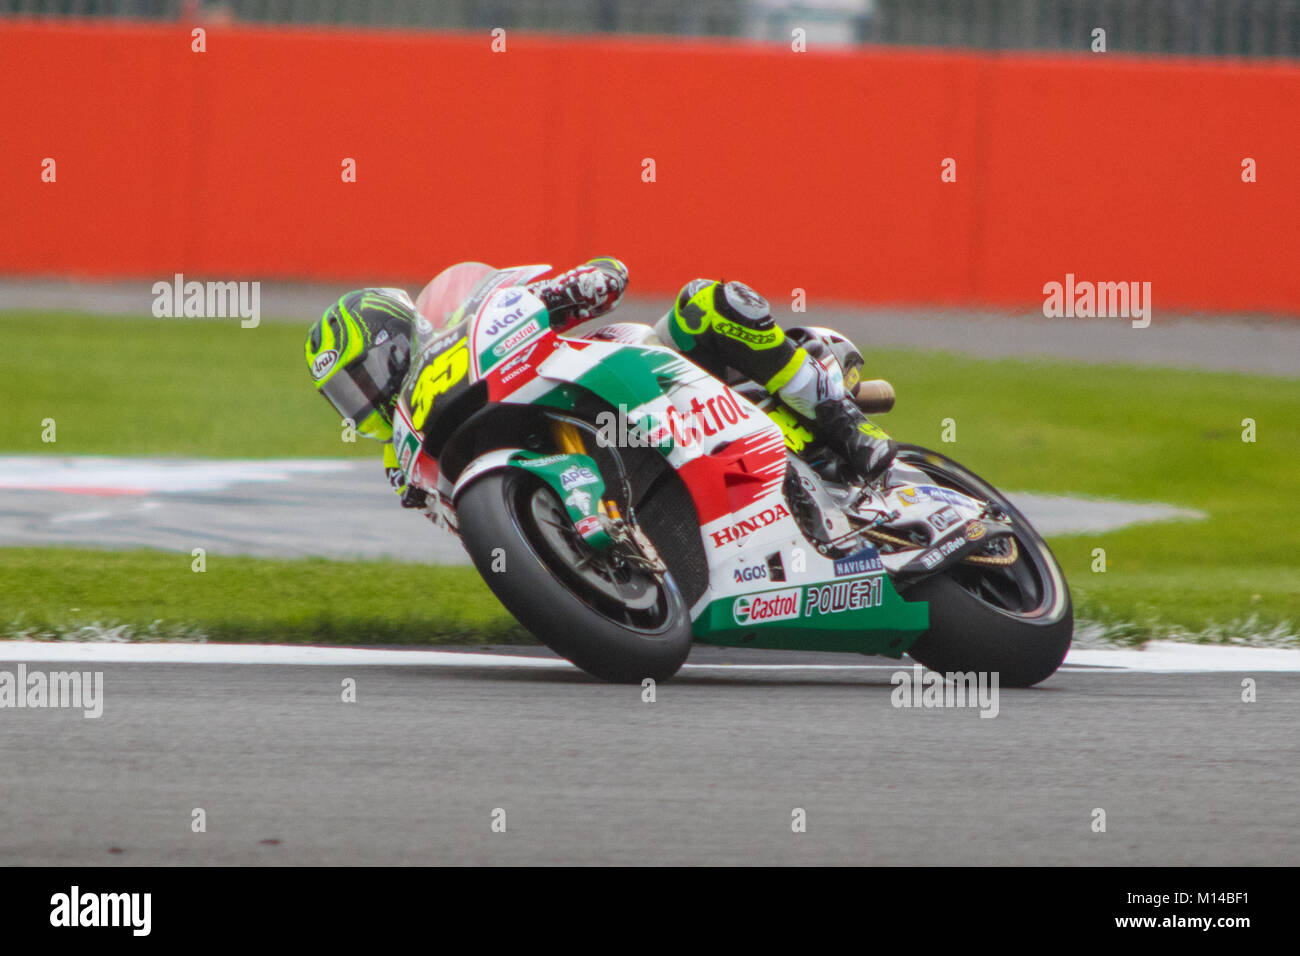 Cal Crutchlow on a flying lap during qualifying for Octo British Grand Prix 2017 - Stock Image